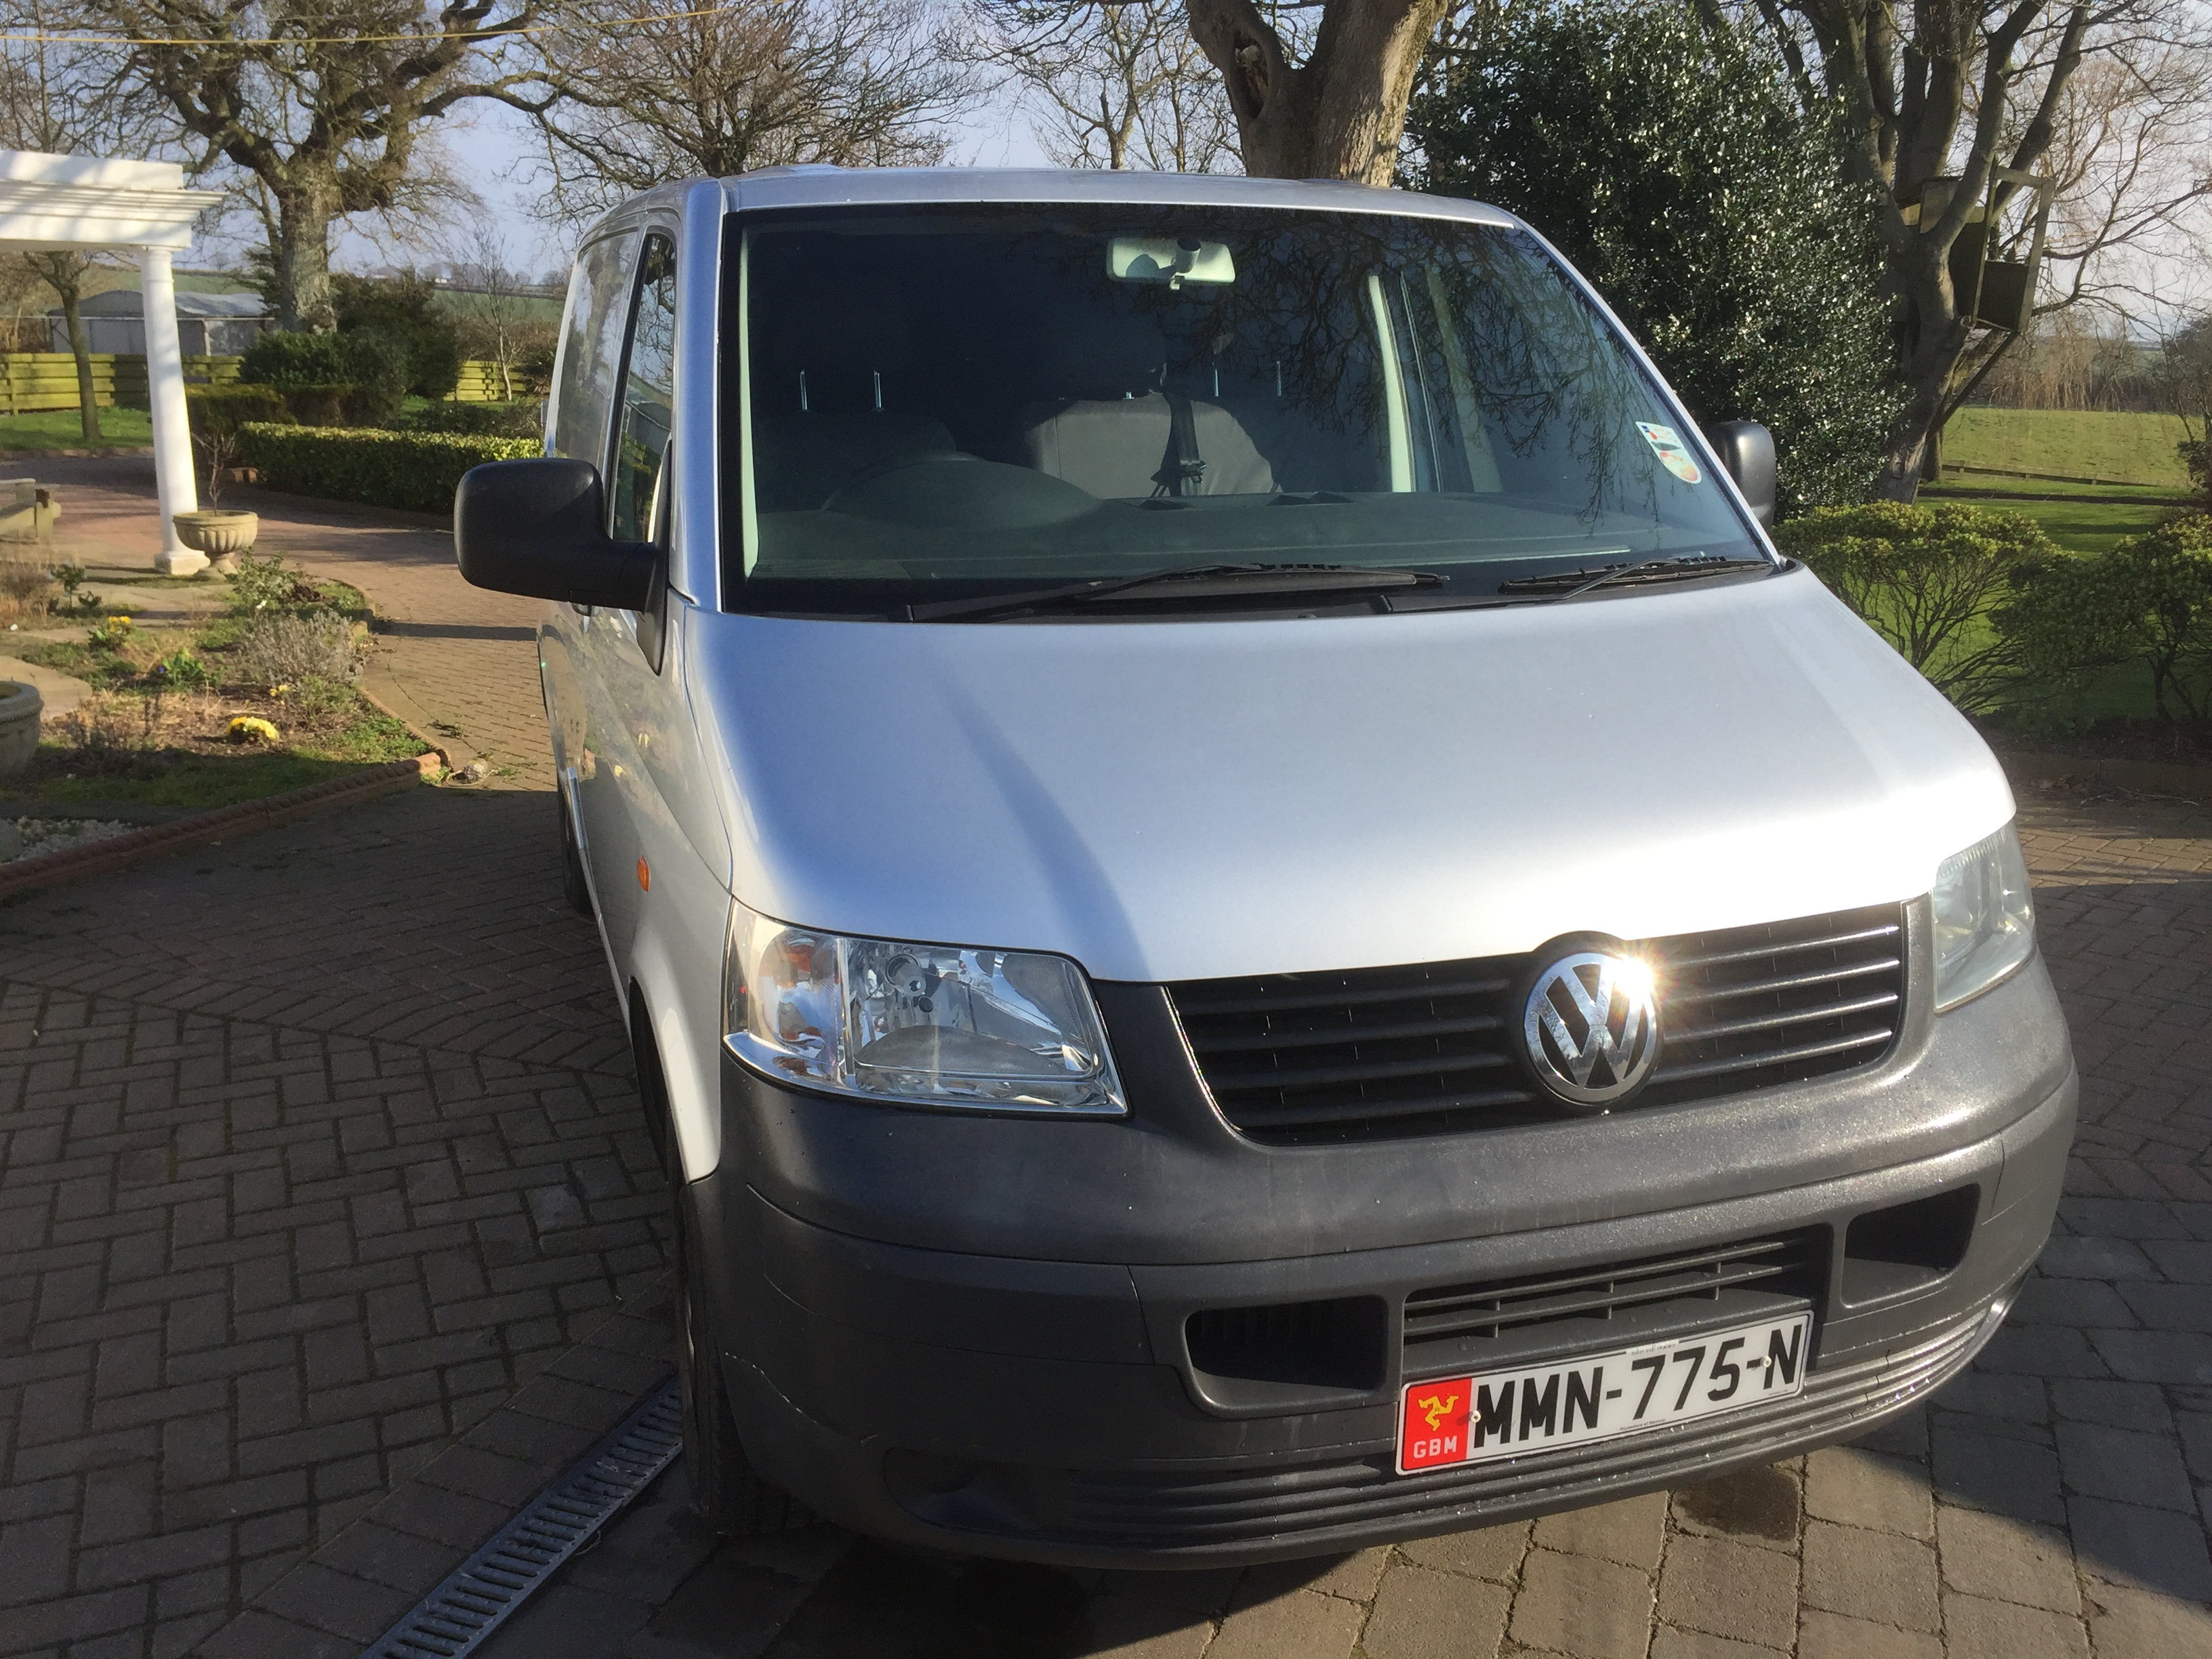 Vw Transporter t5 1.9 from private